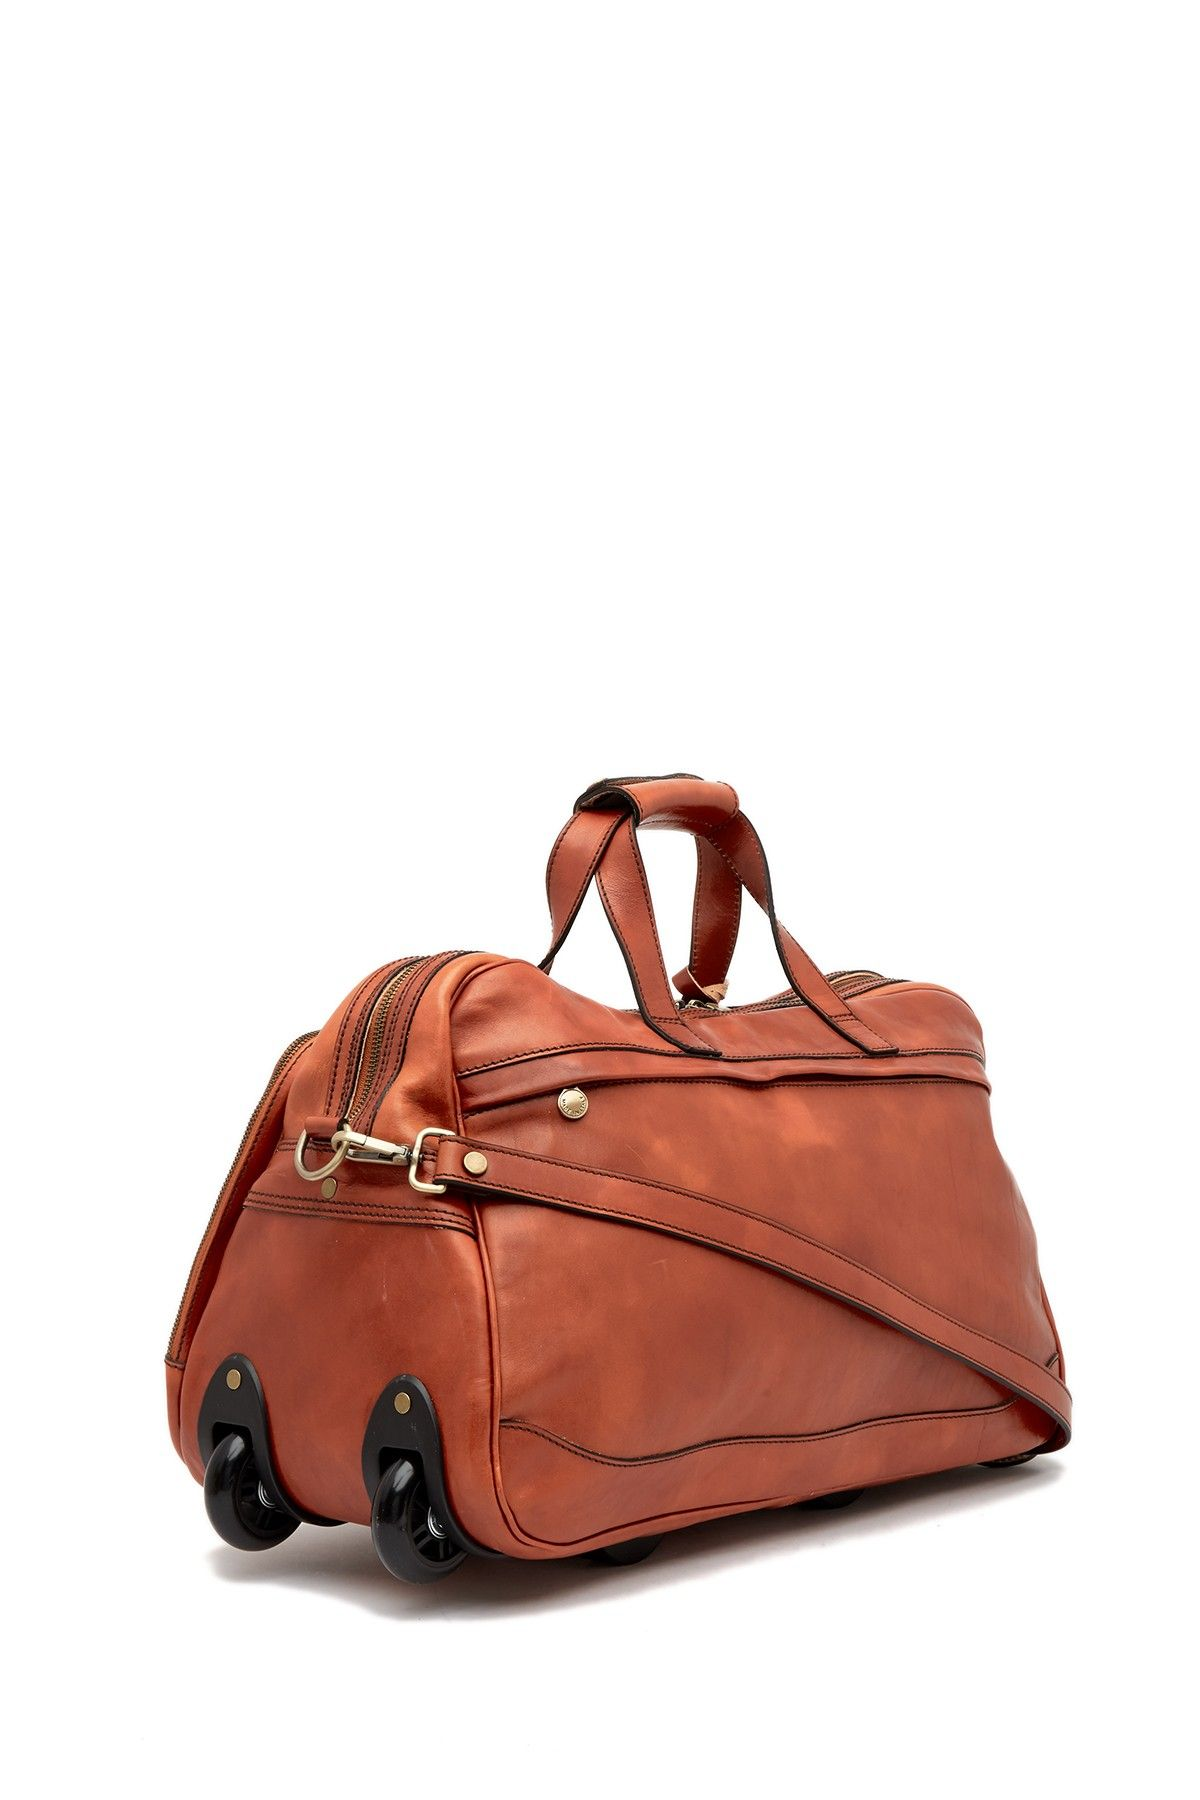 7c9b66011e Rolling Leather Duffel Bag by Persaman New York on  nordstrom rack